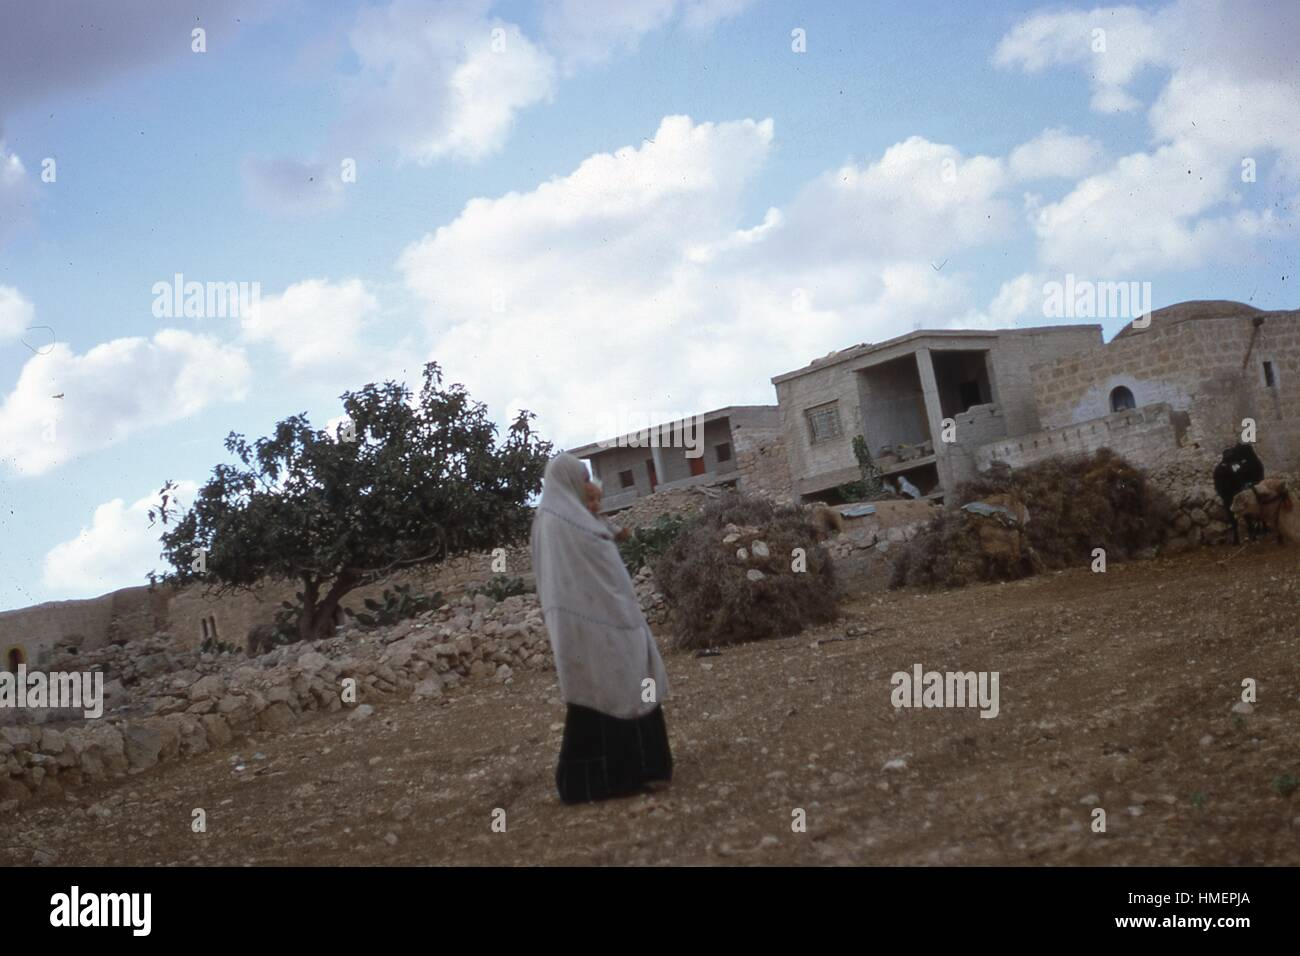 Arab woman wearing a niqab or burka carries a child while walking across rocky land toward houses and buildings - Stock Image